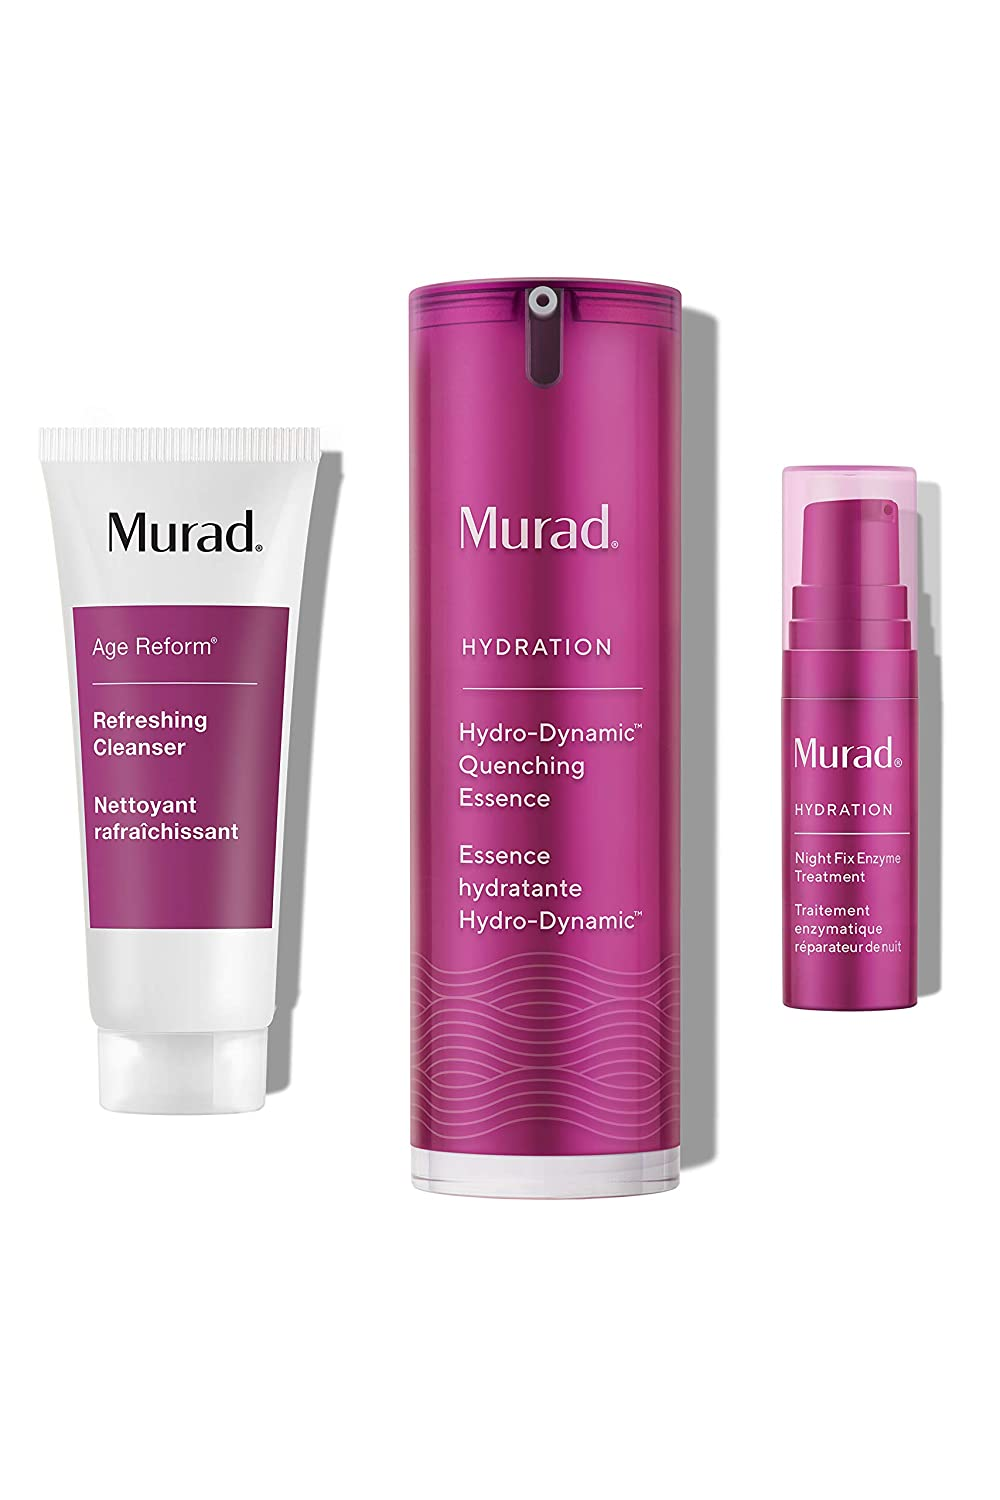 Murad Facial Skincare Value Sets